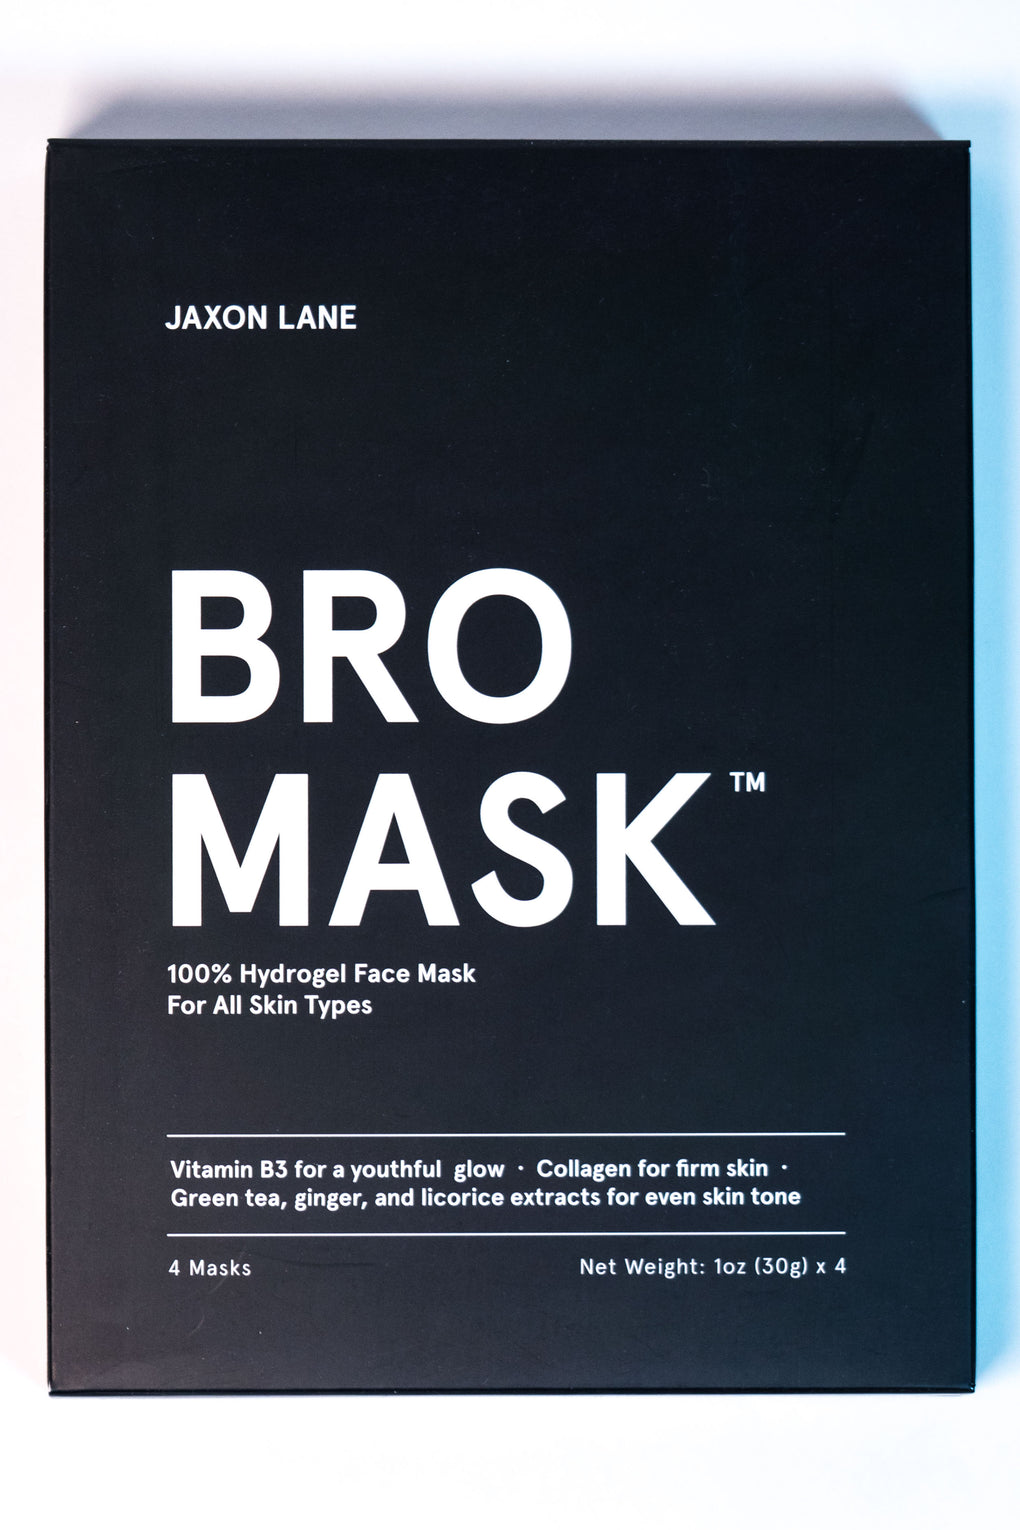 BRO MASK 4-PACK HYDROGEL SKINCARE MASK